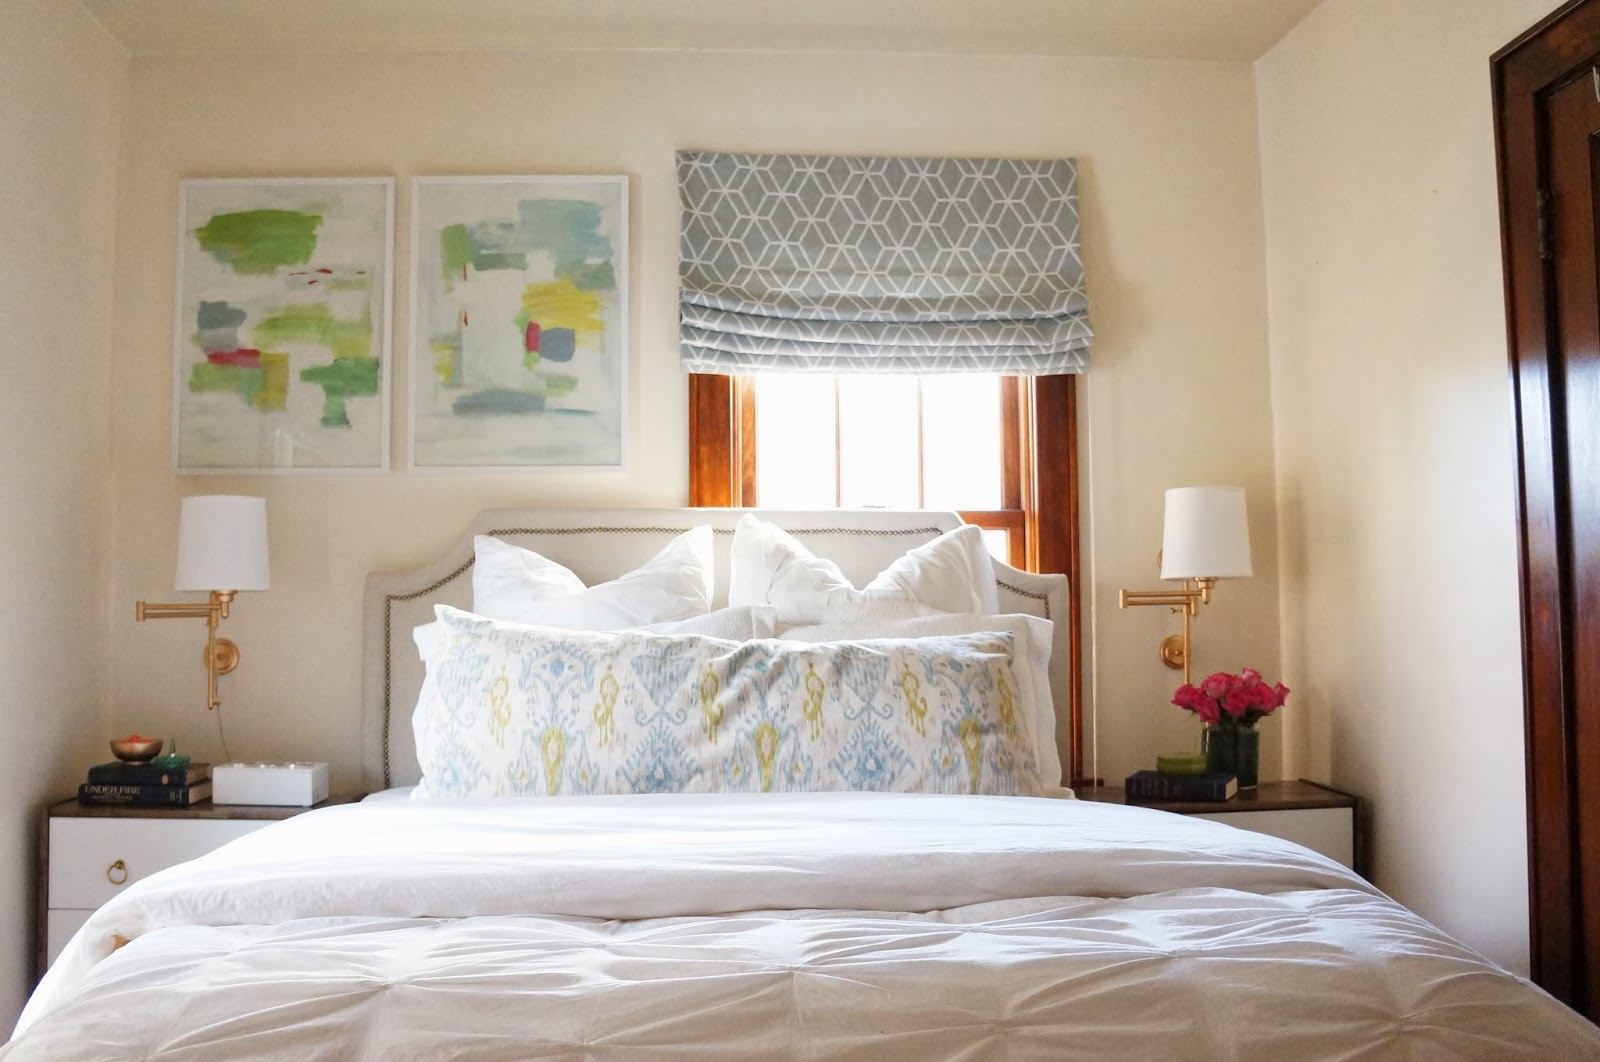 Light and Bright Bedroom Off Centered Window